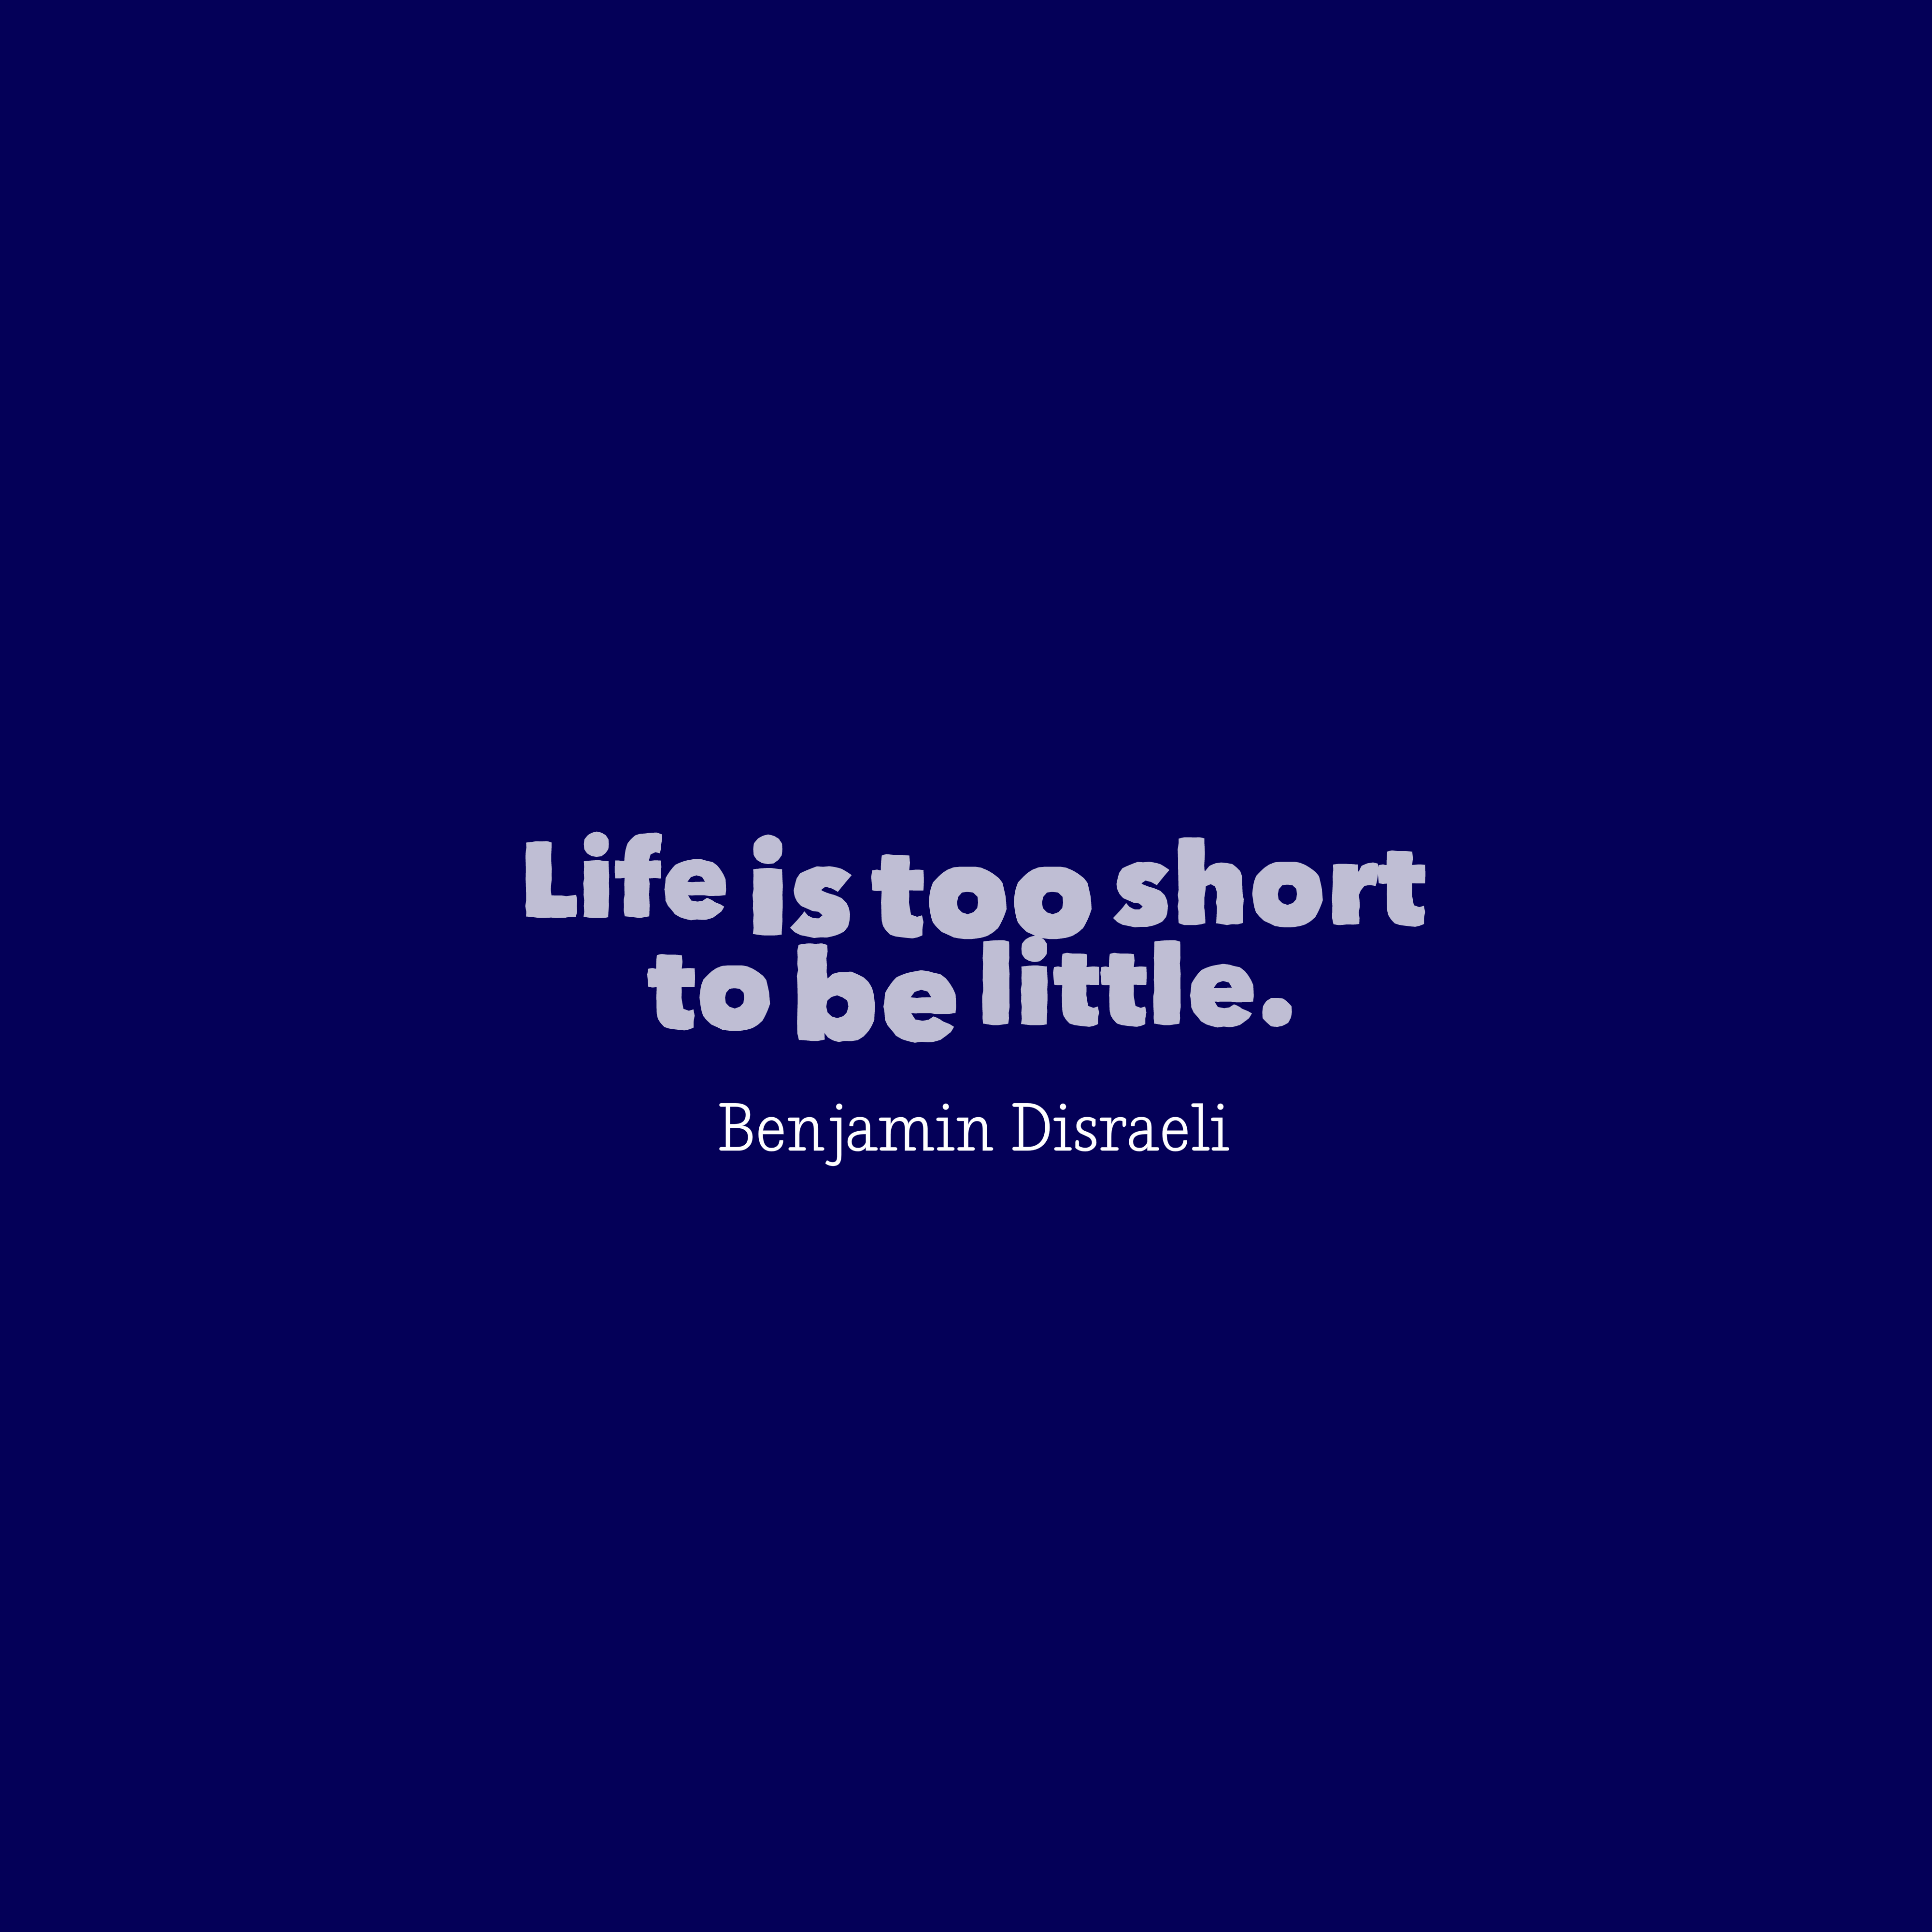 Quotes image of Life is too short to be little.